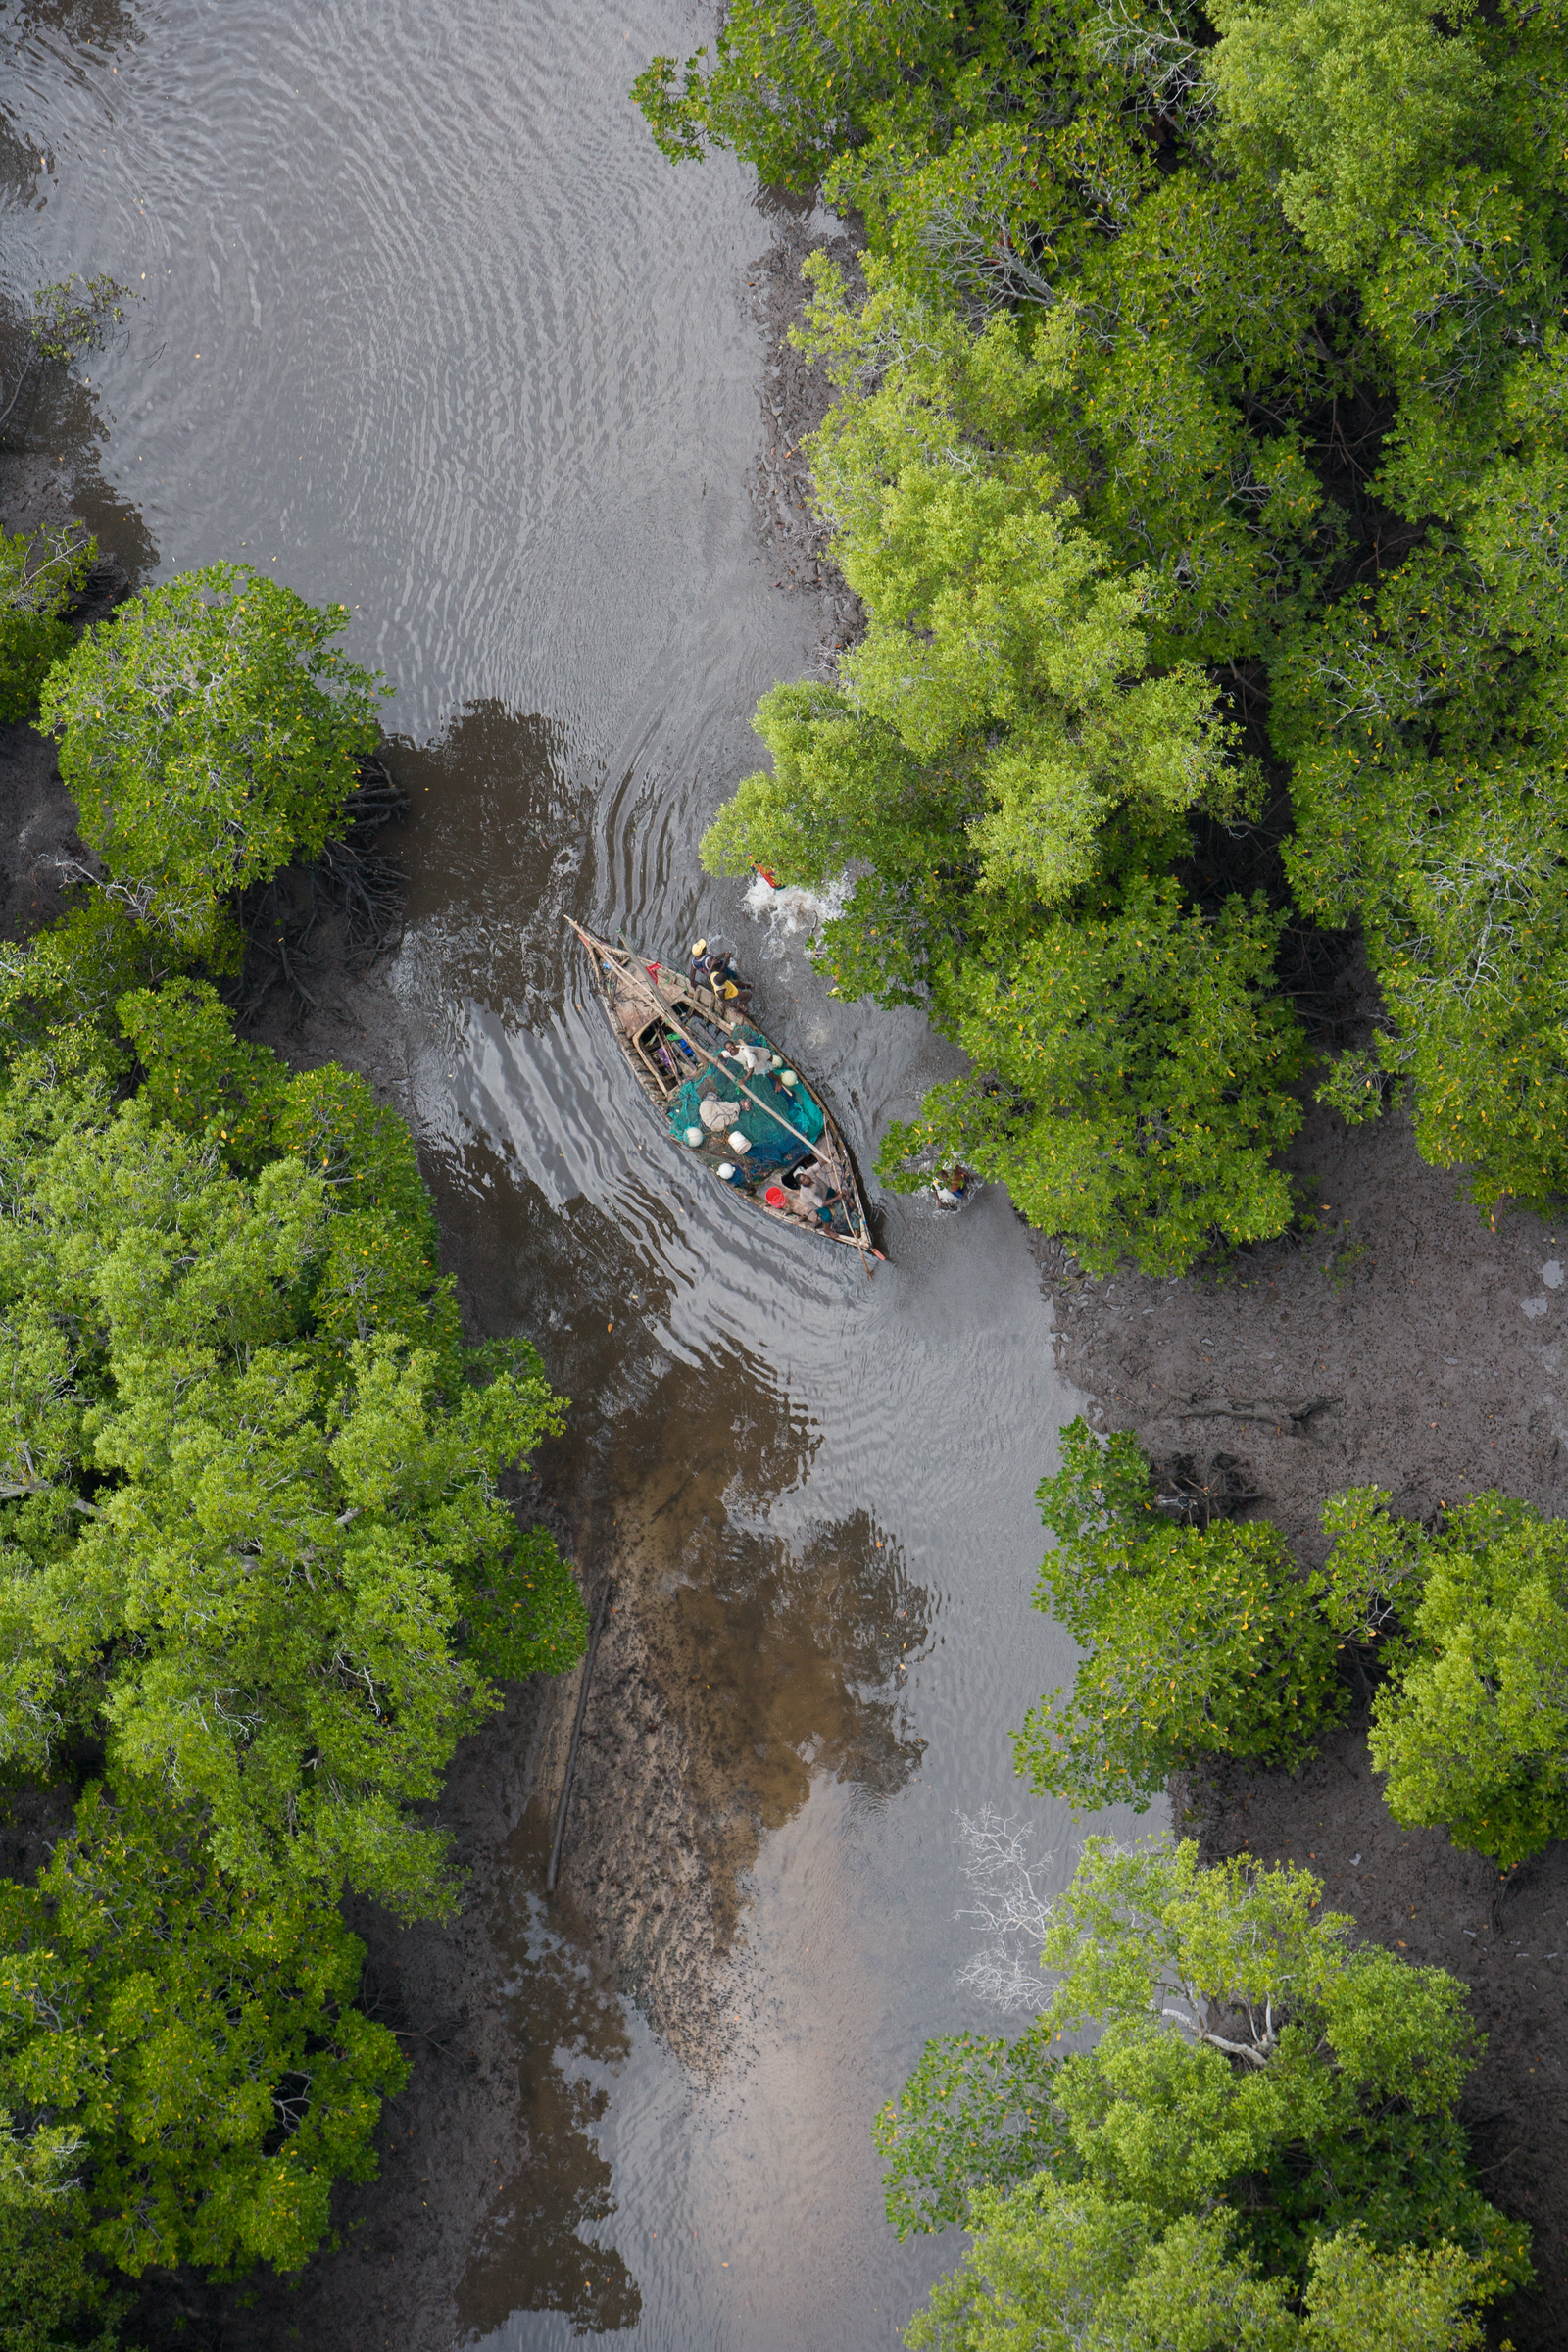 Arial view on river with small boat - Selous